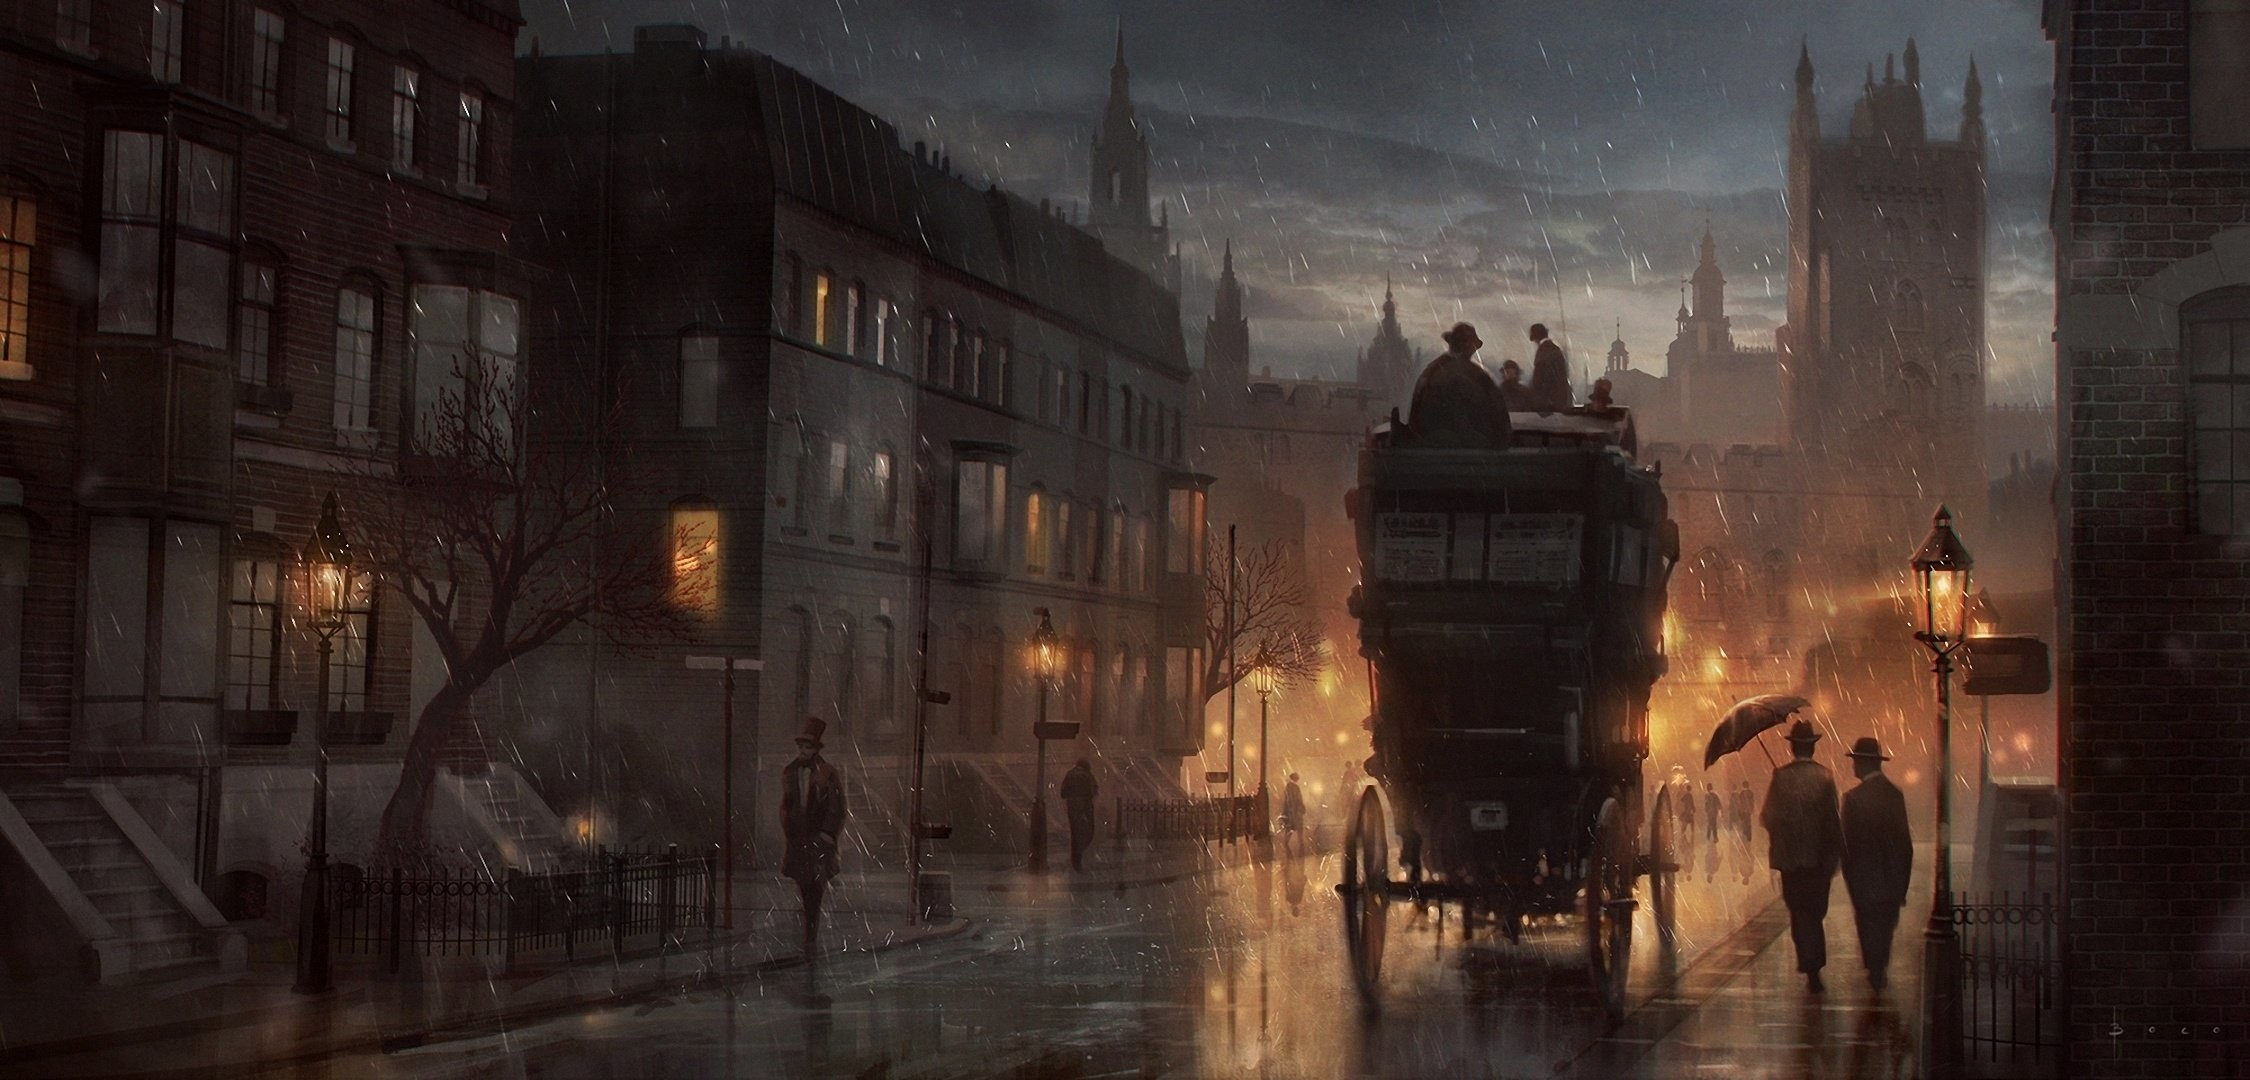 2250x1080 London Streets at Night Wallpaper Street Art Night London